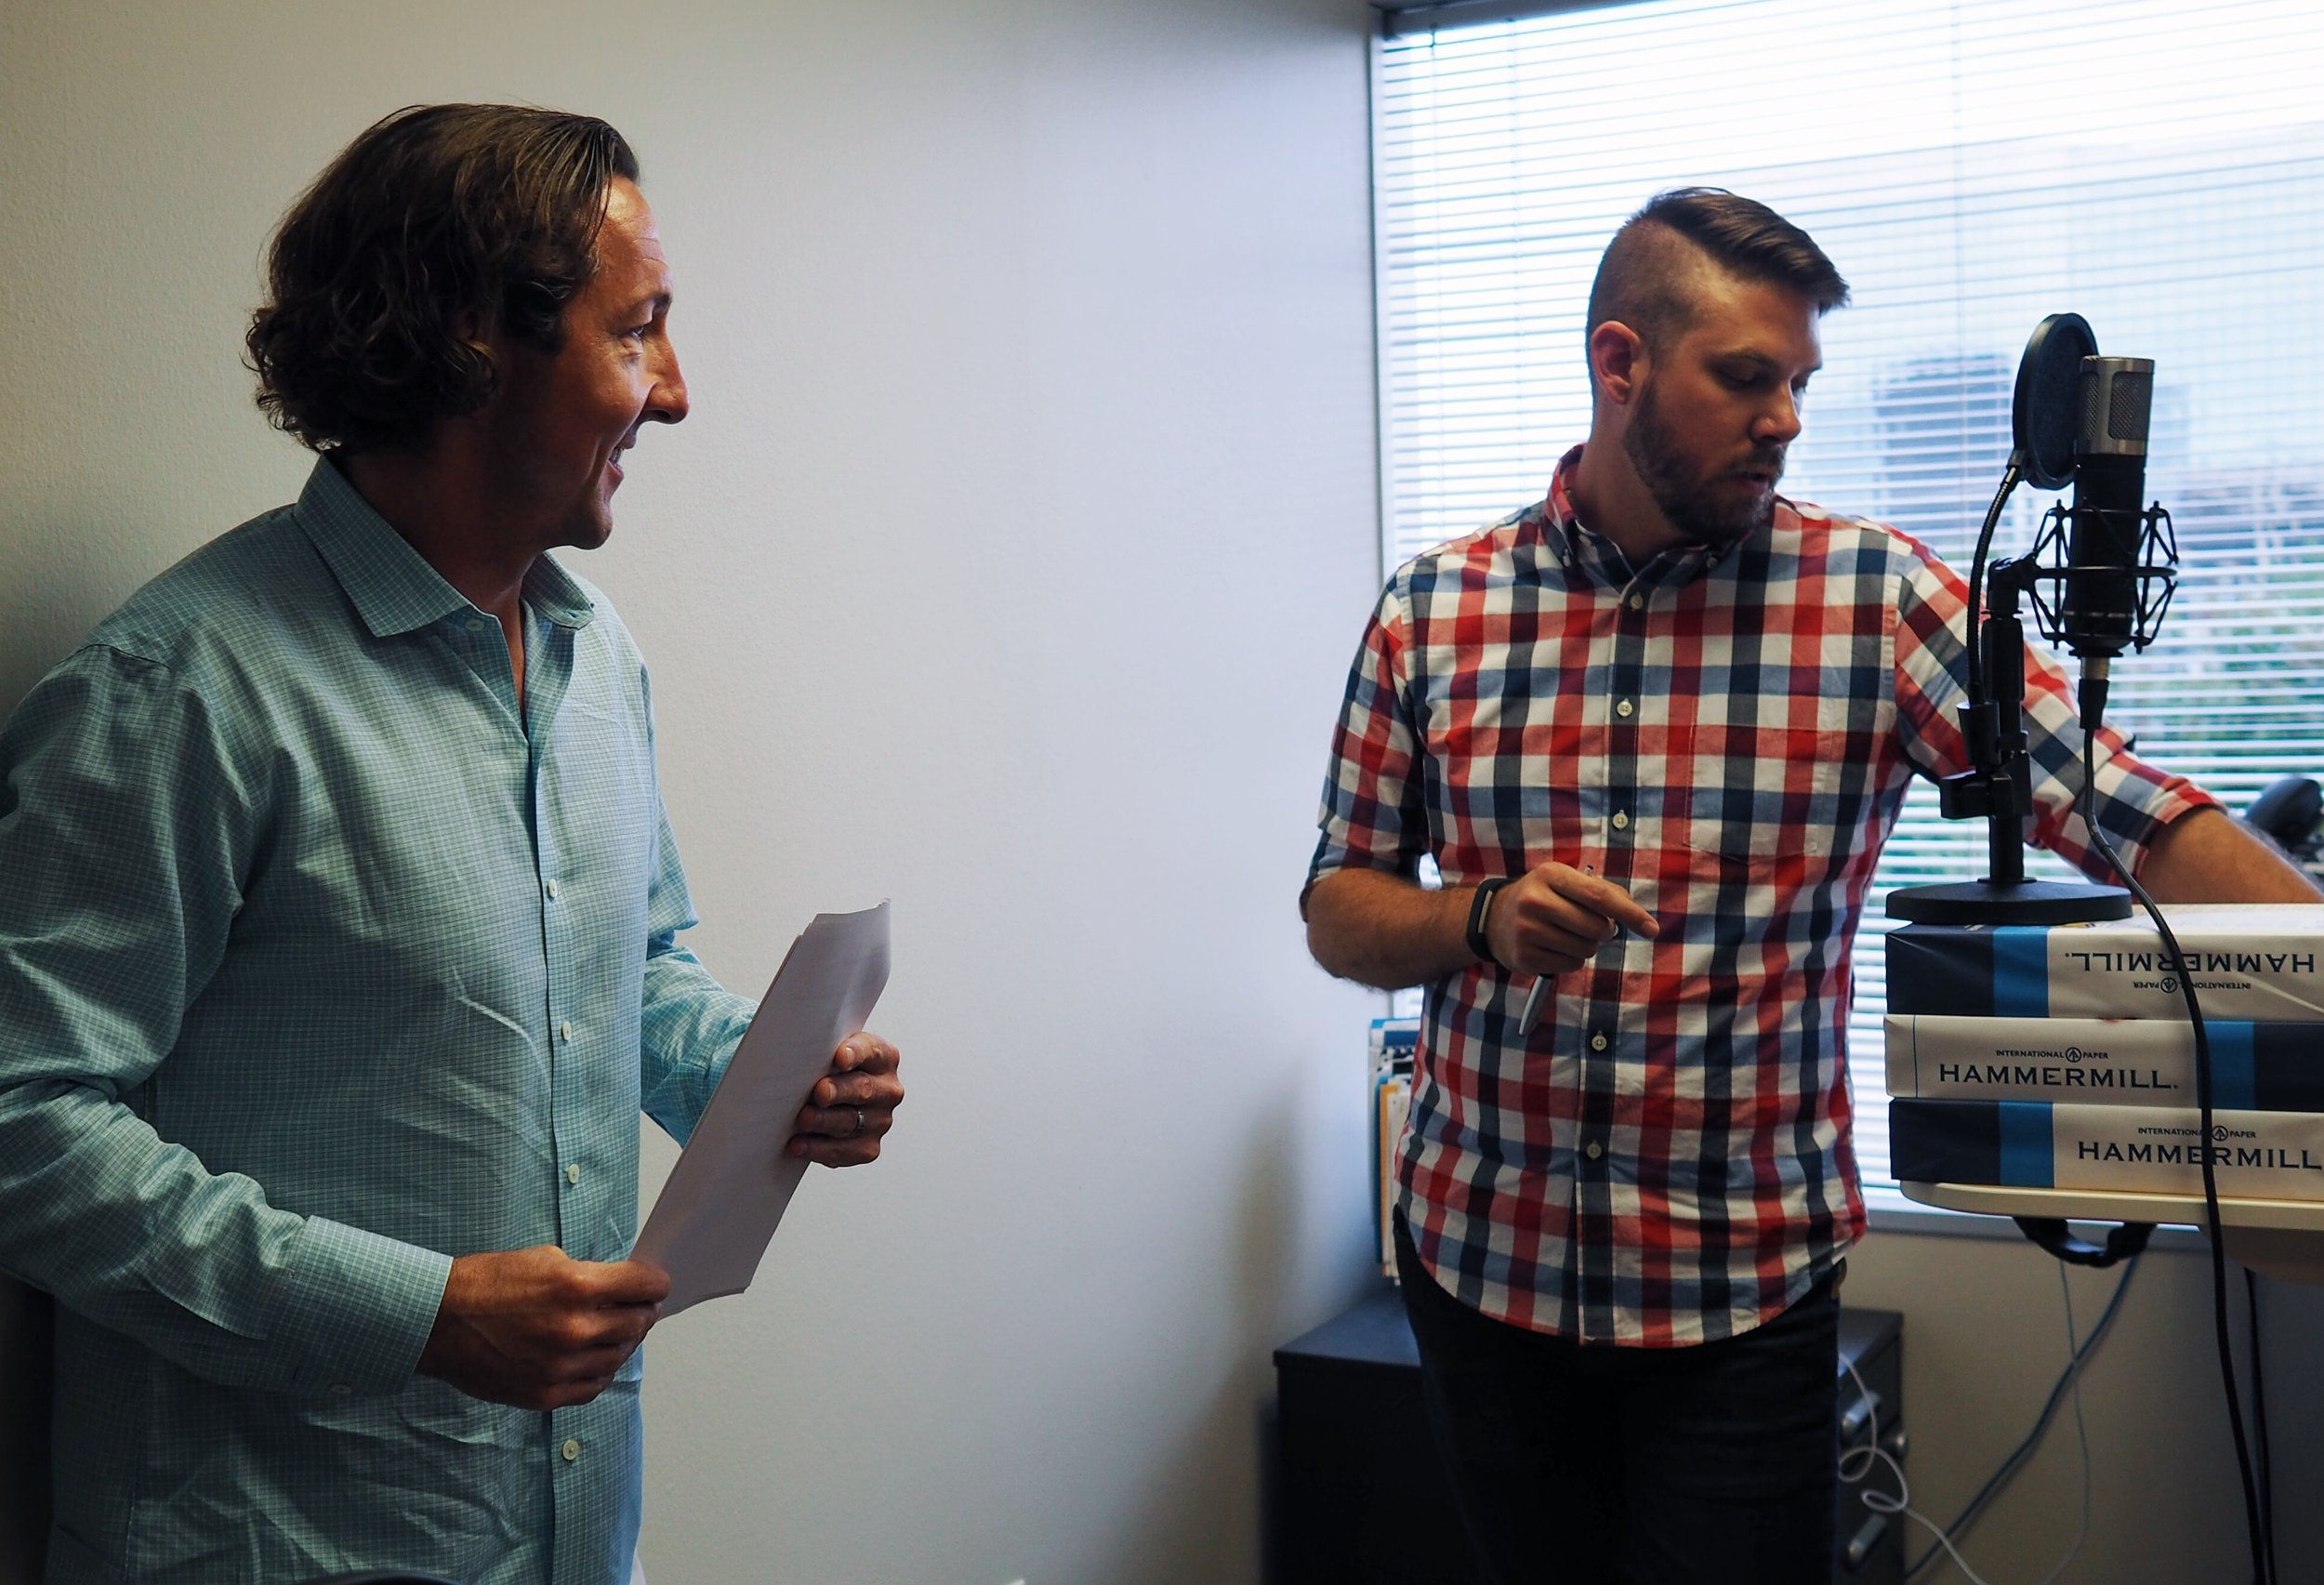 Mike's passion for podcasting has enabled projekt202 to share its stories in another medium. projekt202 Chairman and CEO David Lancashire joined Mike for a recent podcast interview.